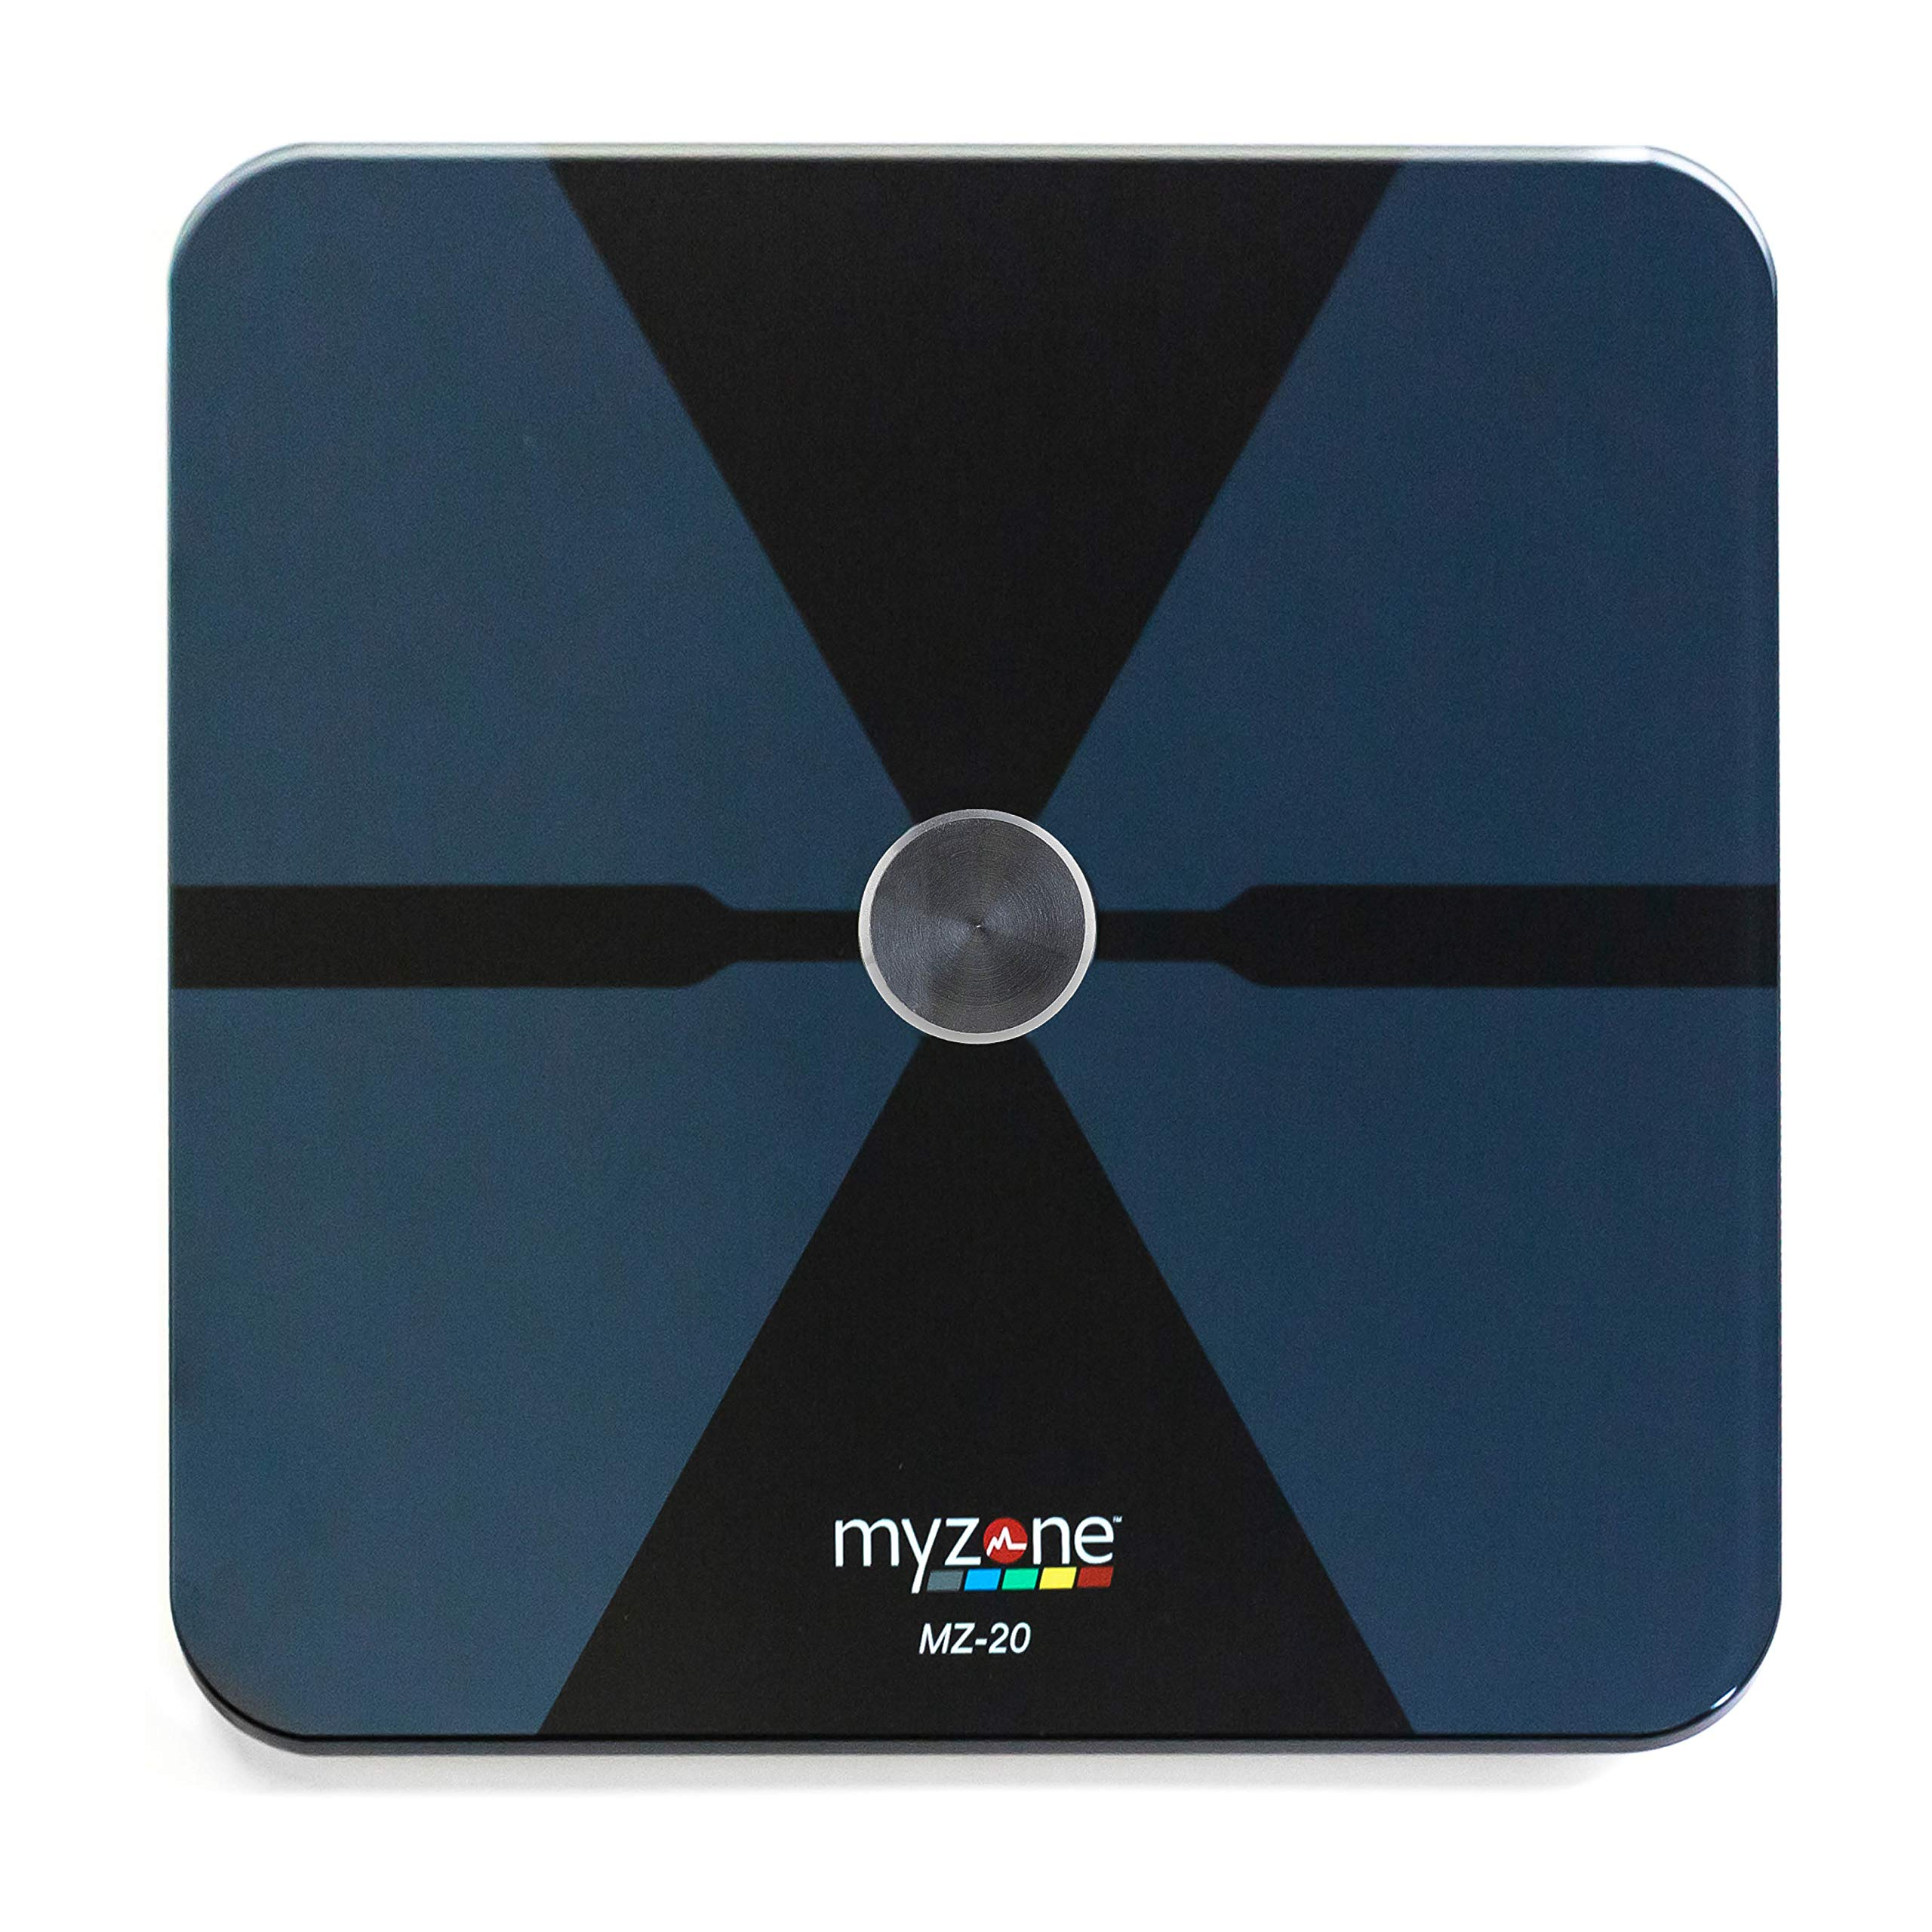 MYZONE MZ-20 Home Scale (Black) by Myzone (Image #1)